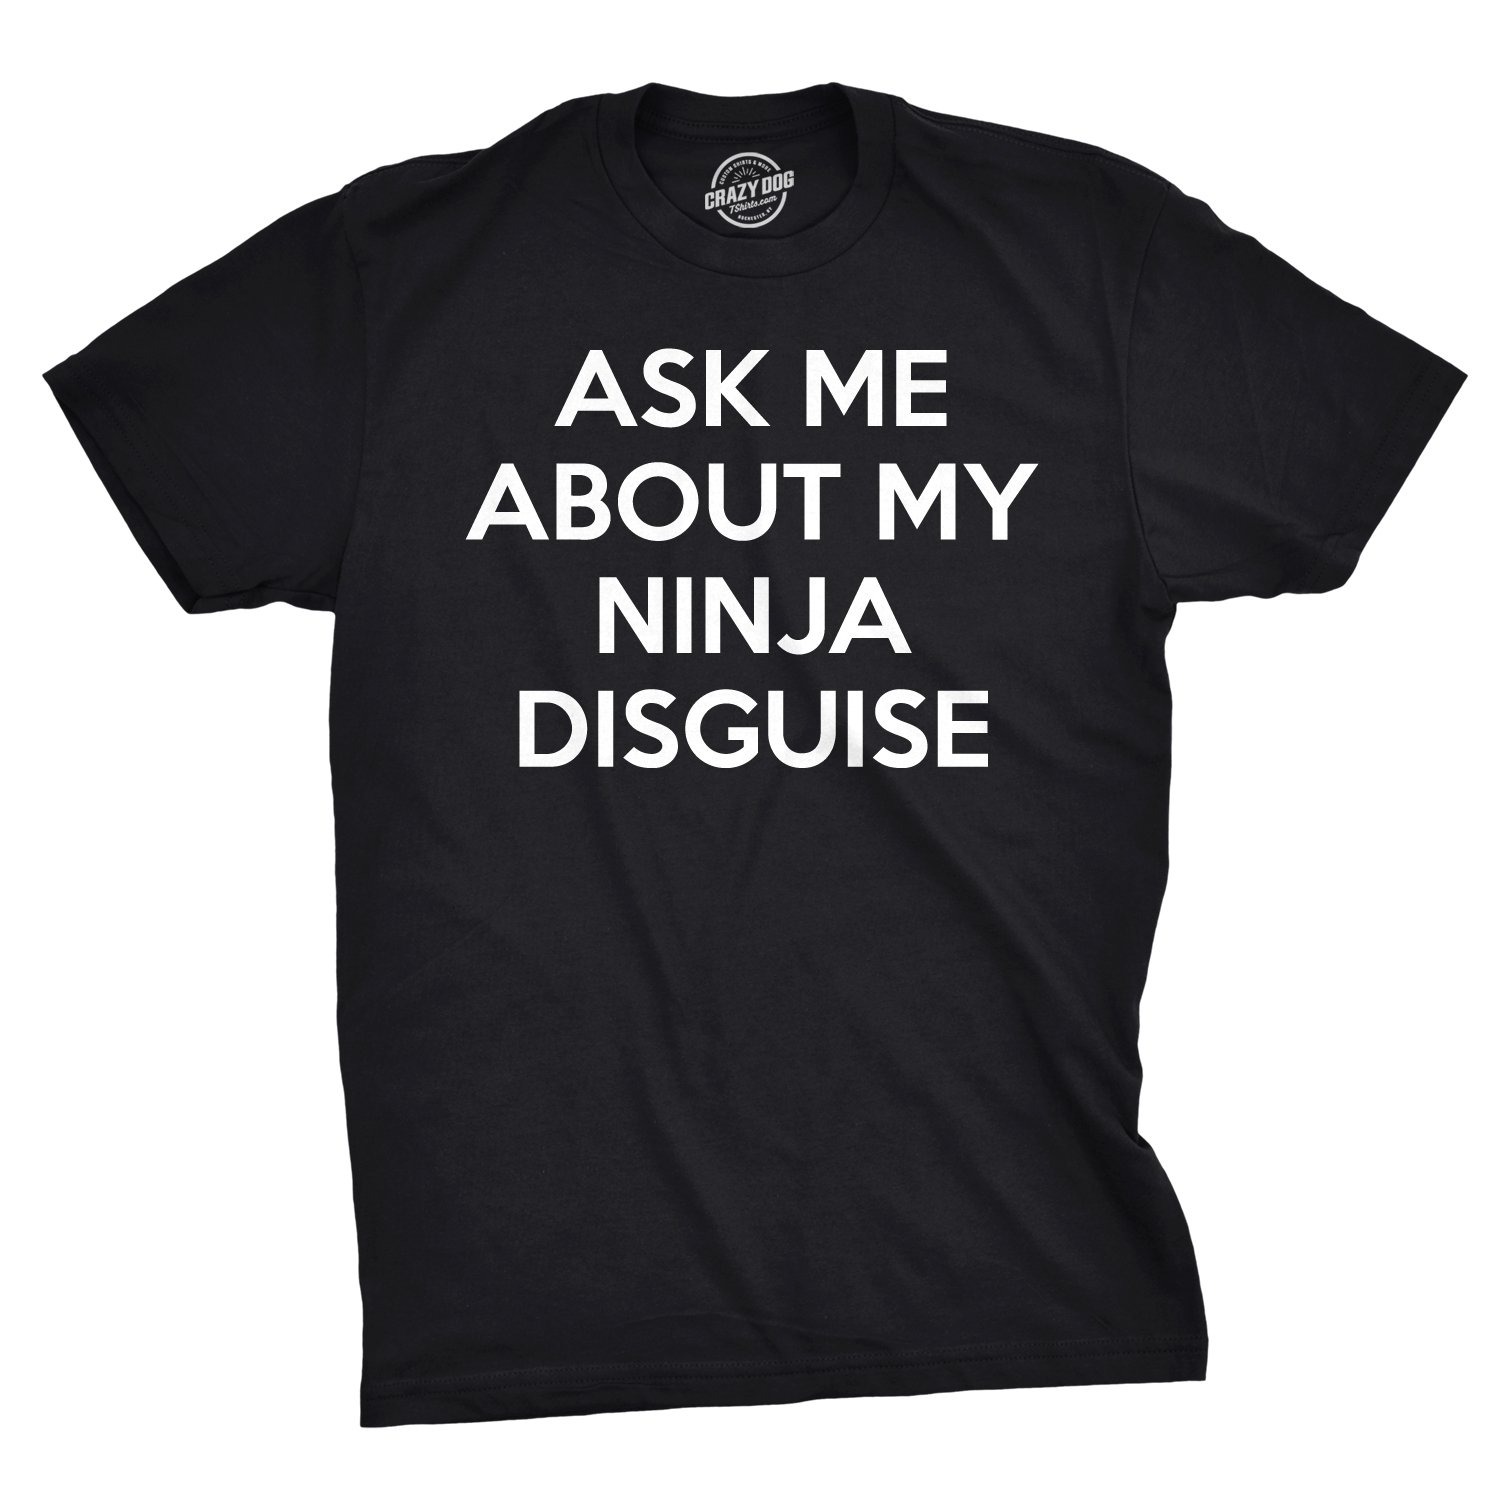 aabee5a026 Mens Ask Me About My Ninja Disguise Flip T Shirt Funny Karate Costume  Samurai Tee Black  Amazon.co.uk  Clothing